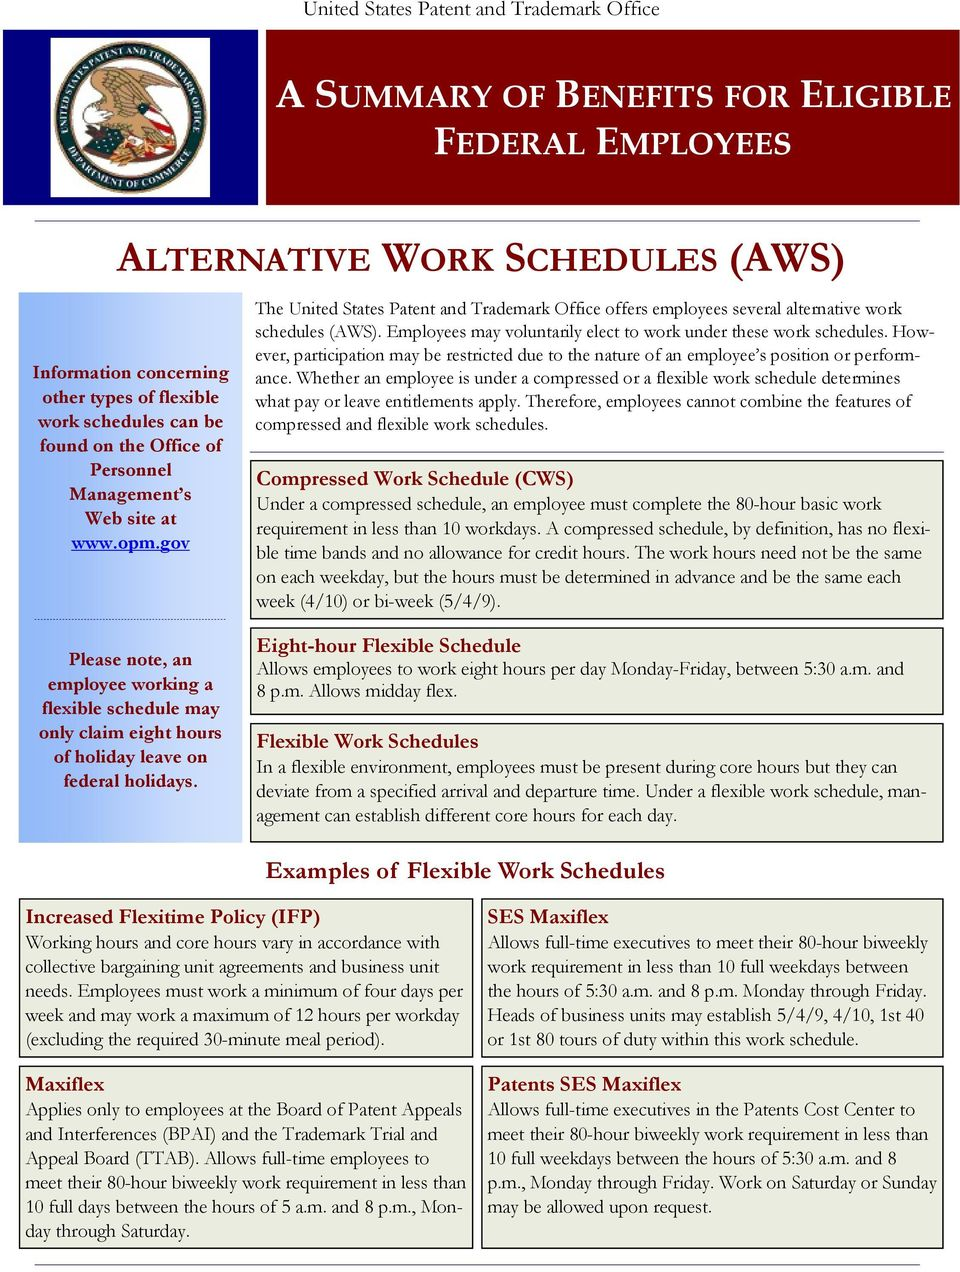 The United States Patent and Trademark Office offers employees several alternative work schedules (AWS). Employees may voluntarily elect to work under these work schedules.